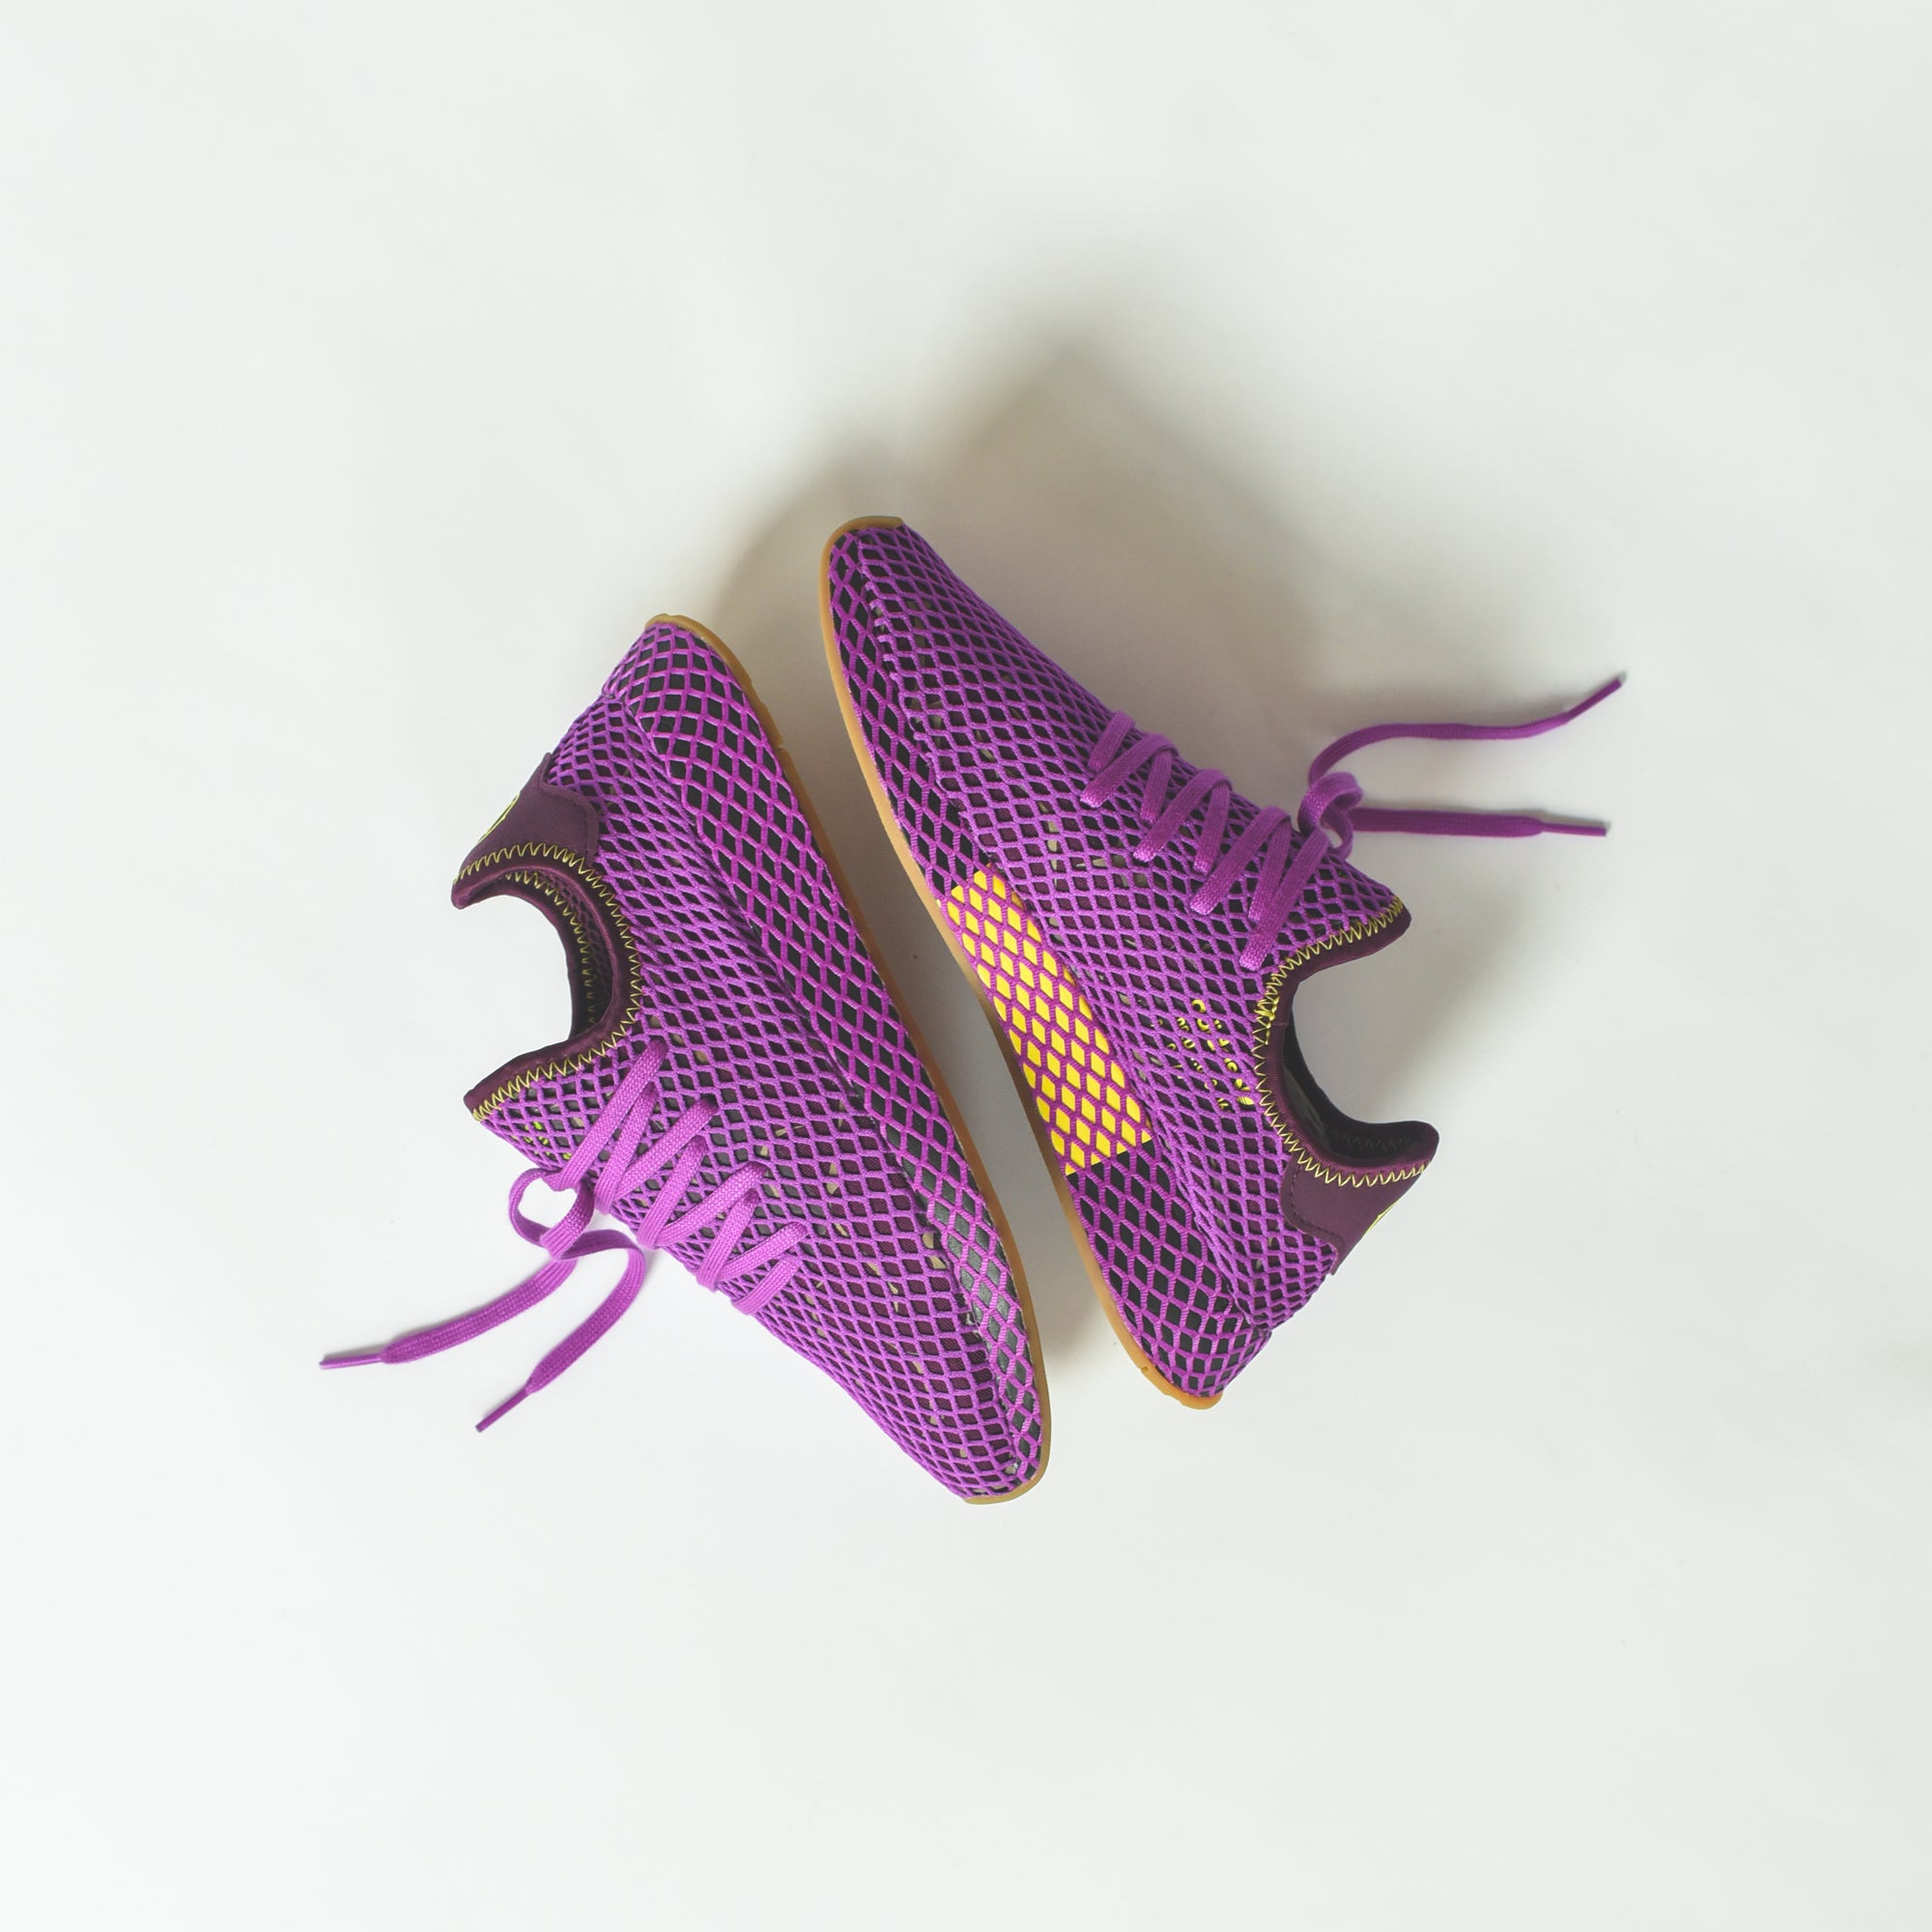 adidas x Dragon Ball Z Deerupt - Purple